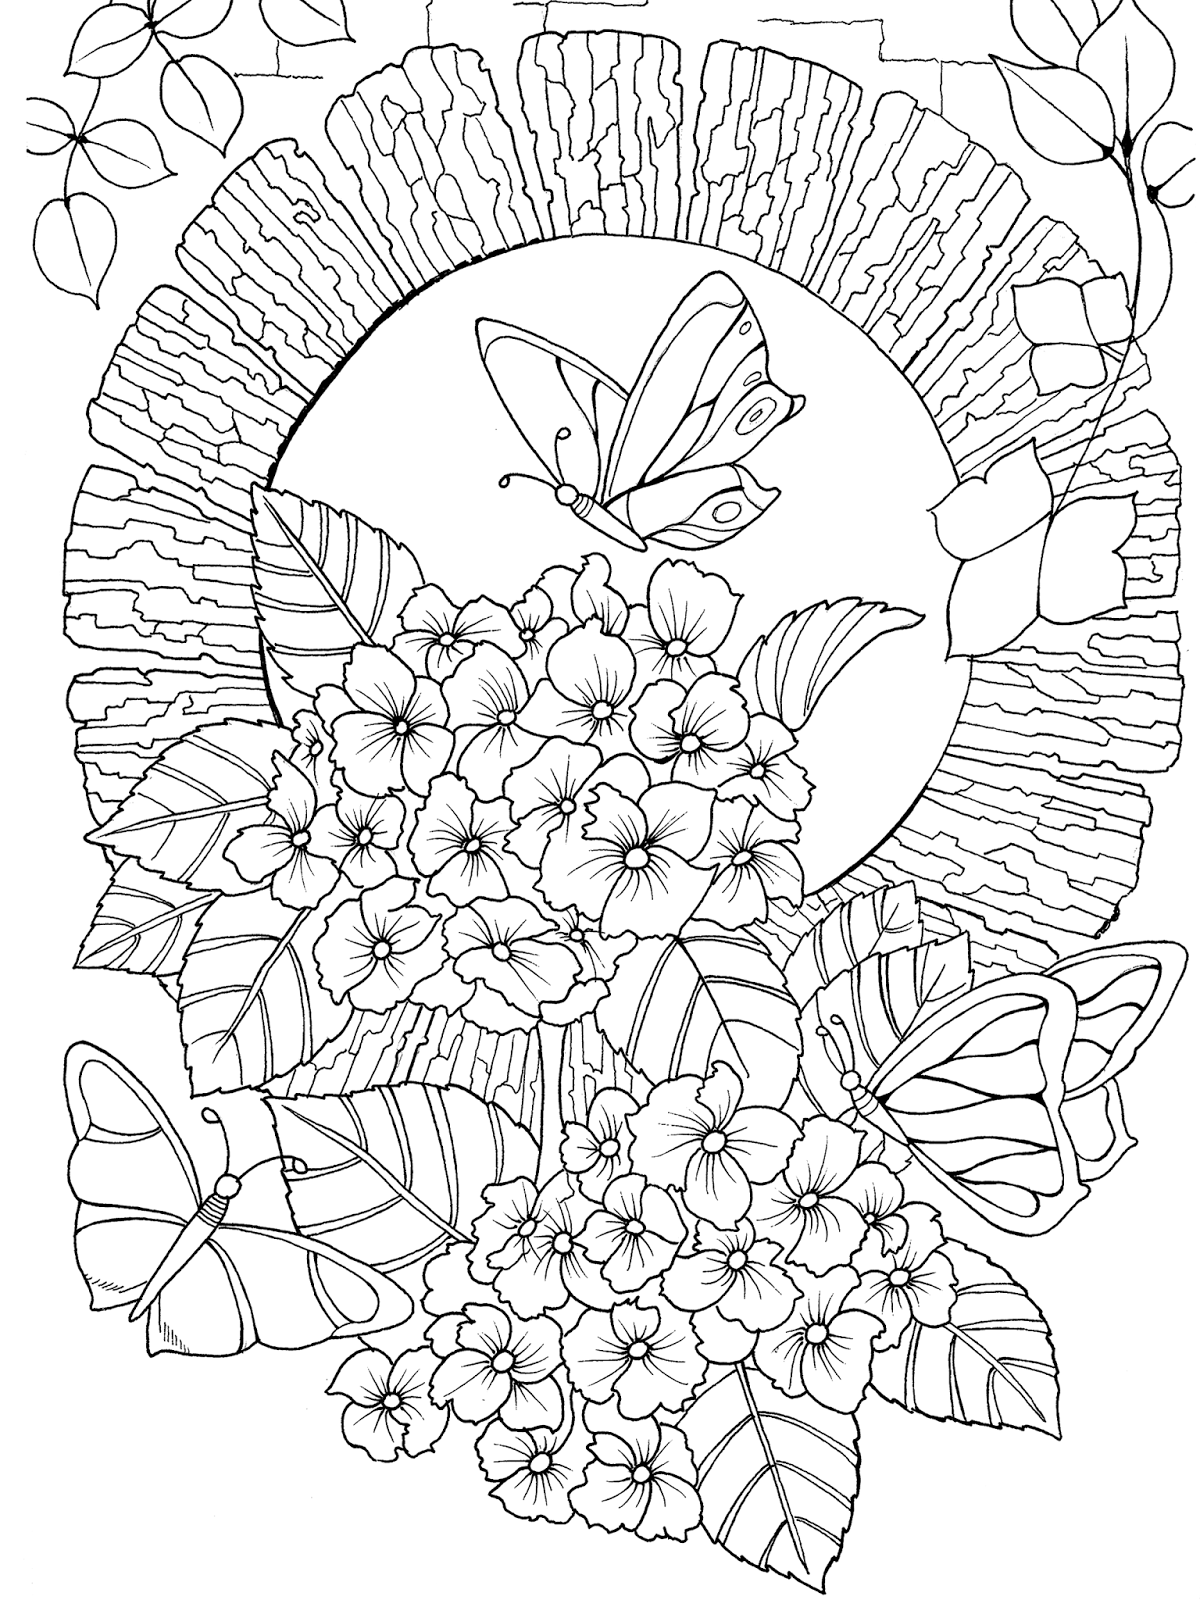 Butterfly Utopia Adult Coloring Book 4 Png 1 200 1 600 Pixels